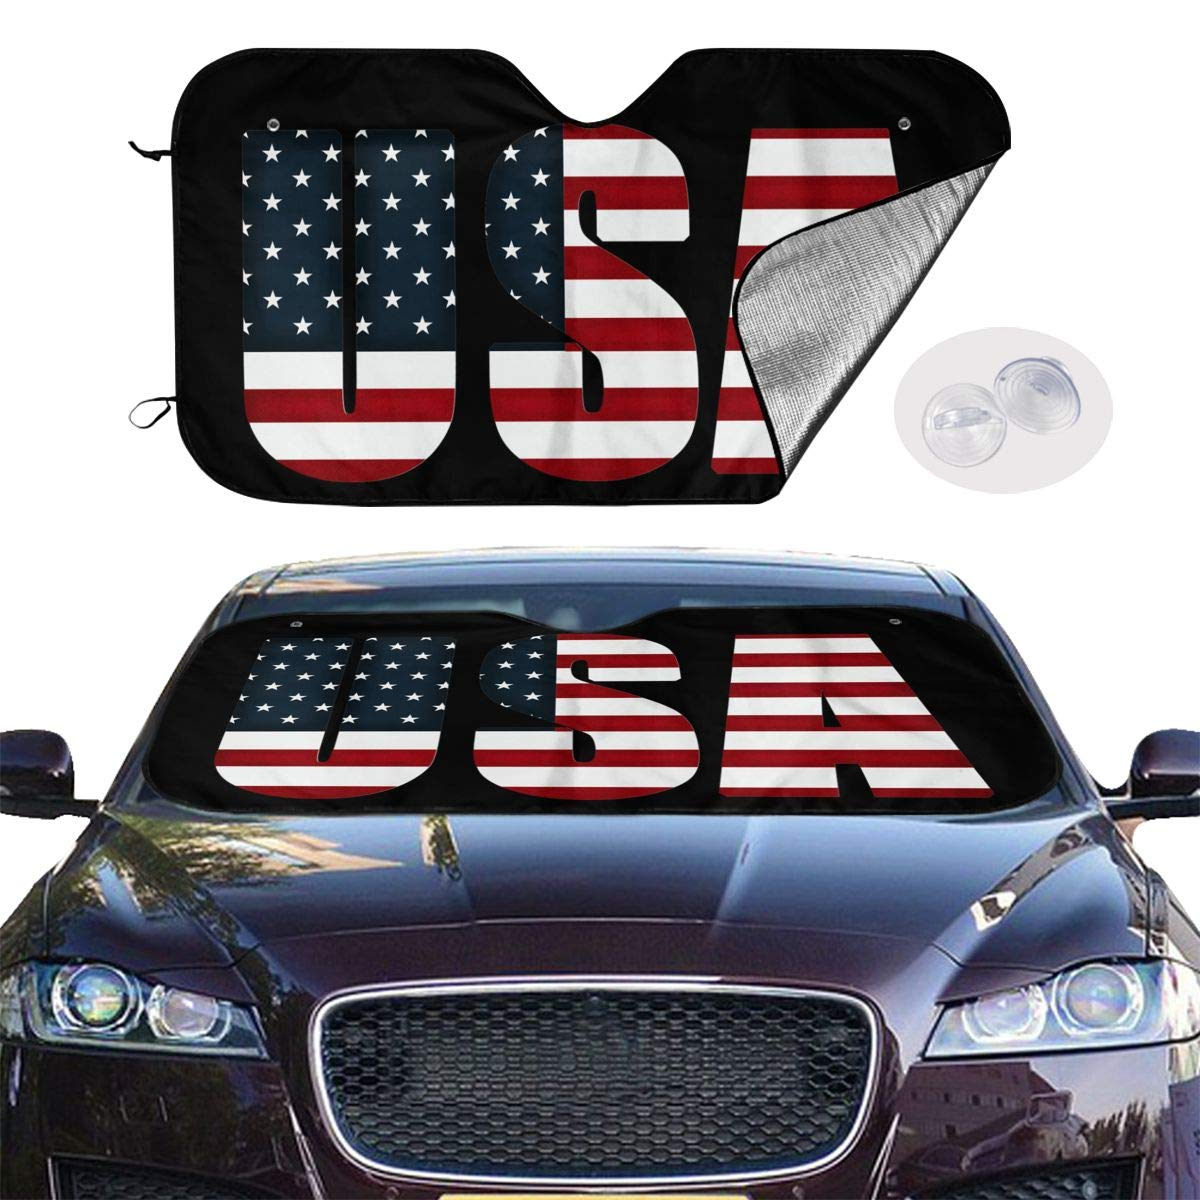 Car Windshield Sunshade Foldable UV Resistant Sun Protection Keeps The Car Cool and Comfortable for Most Car SUV Trucks USA Flag by VvwSaWUgQL